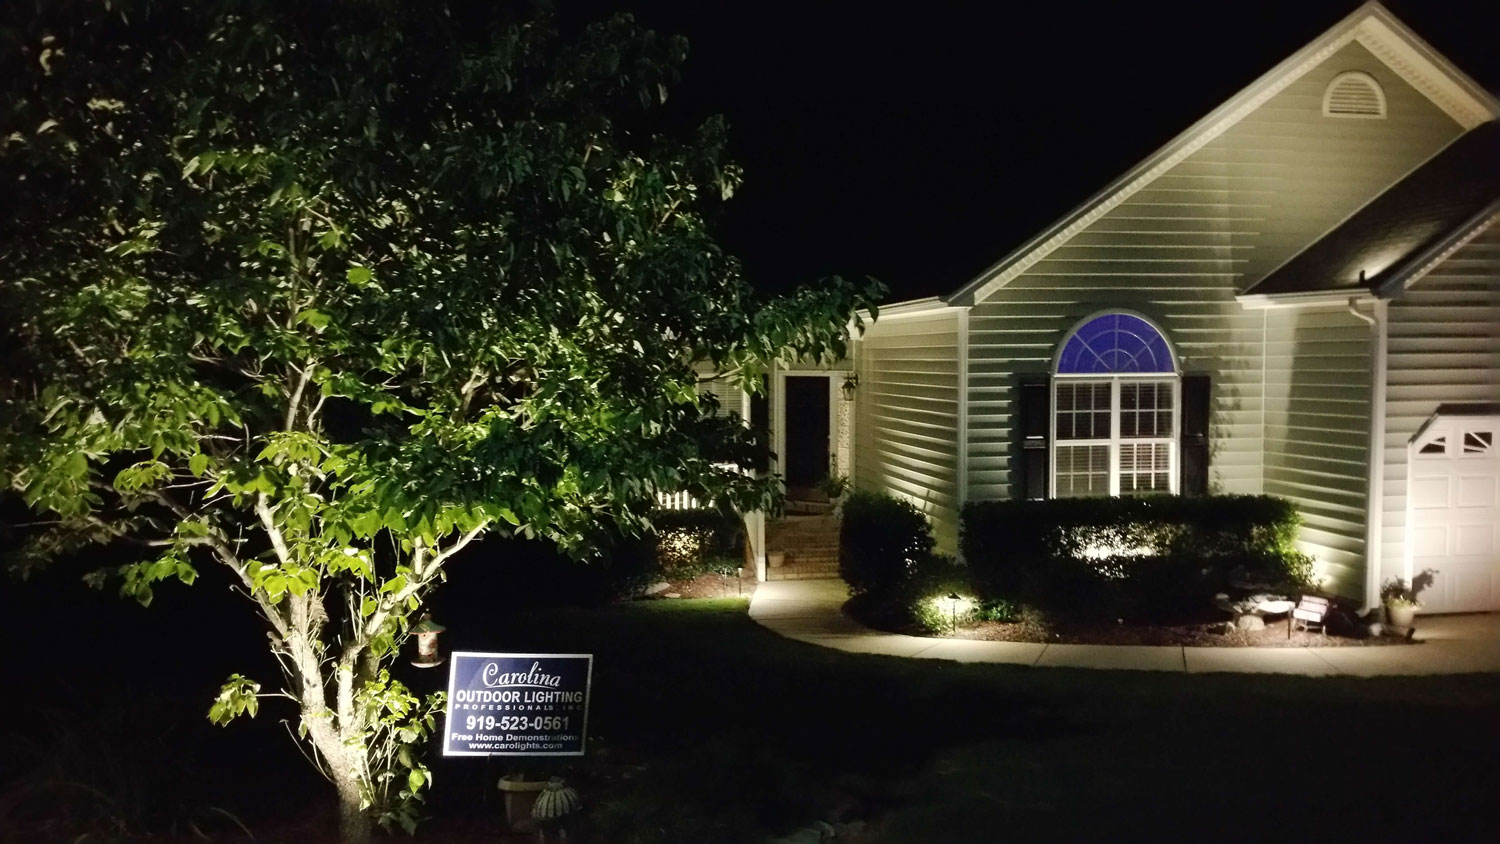 Carolina Outdoor Lighting Professionals North Carolina lighting